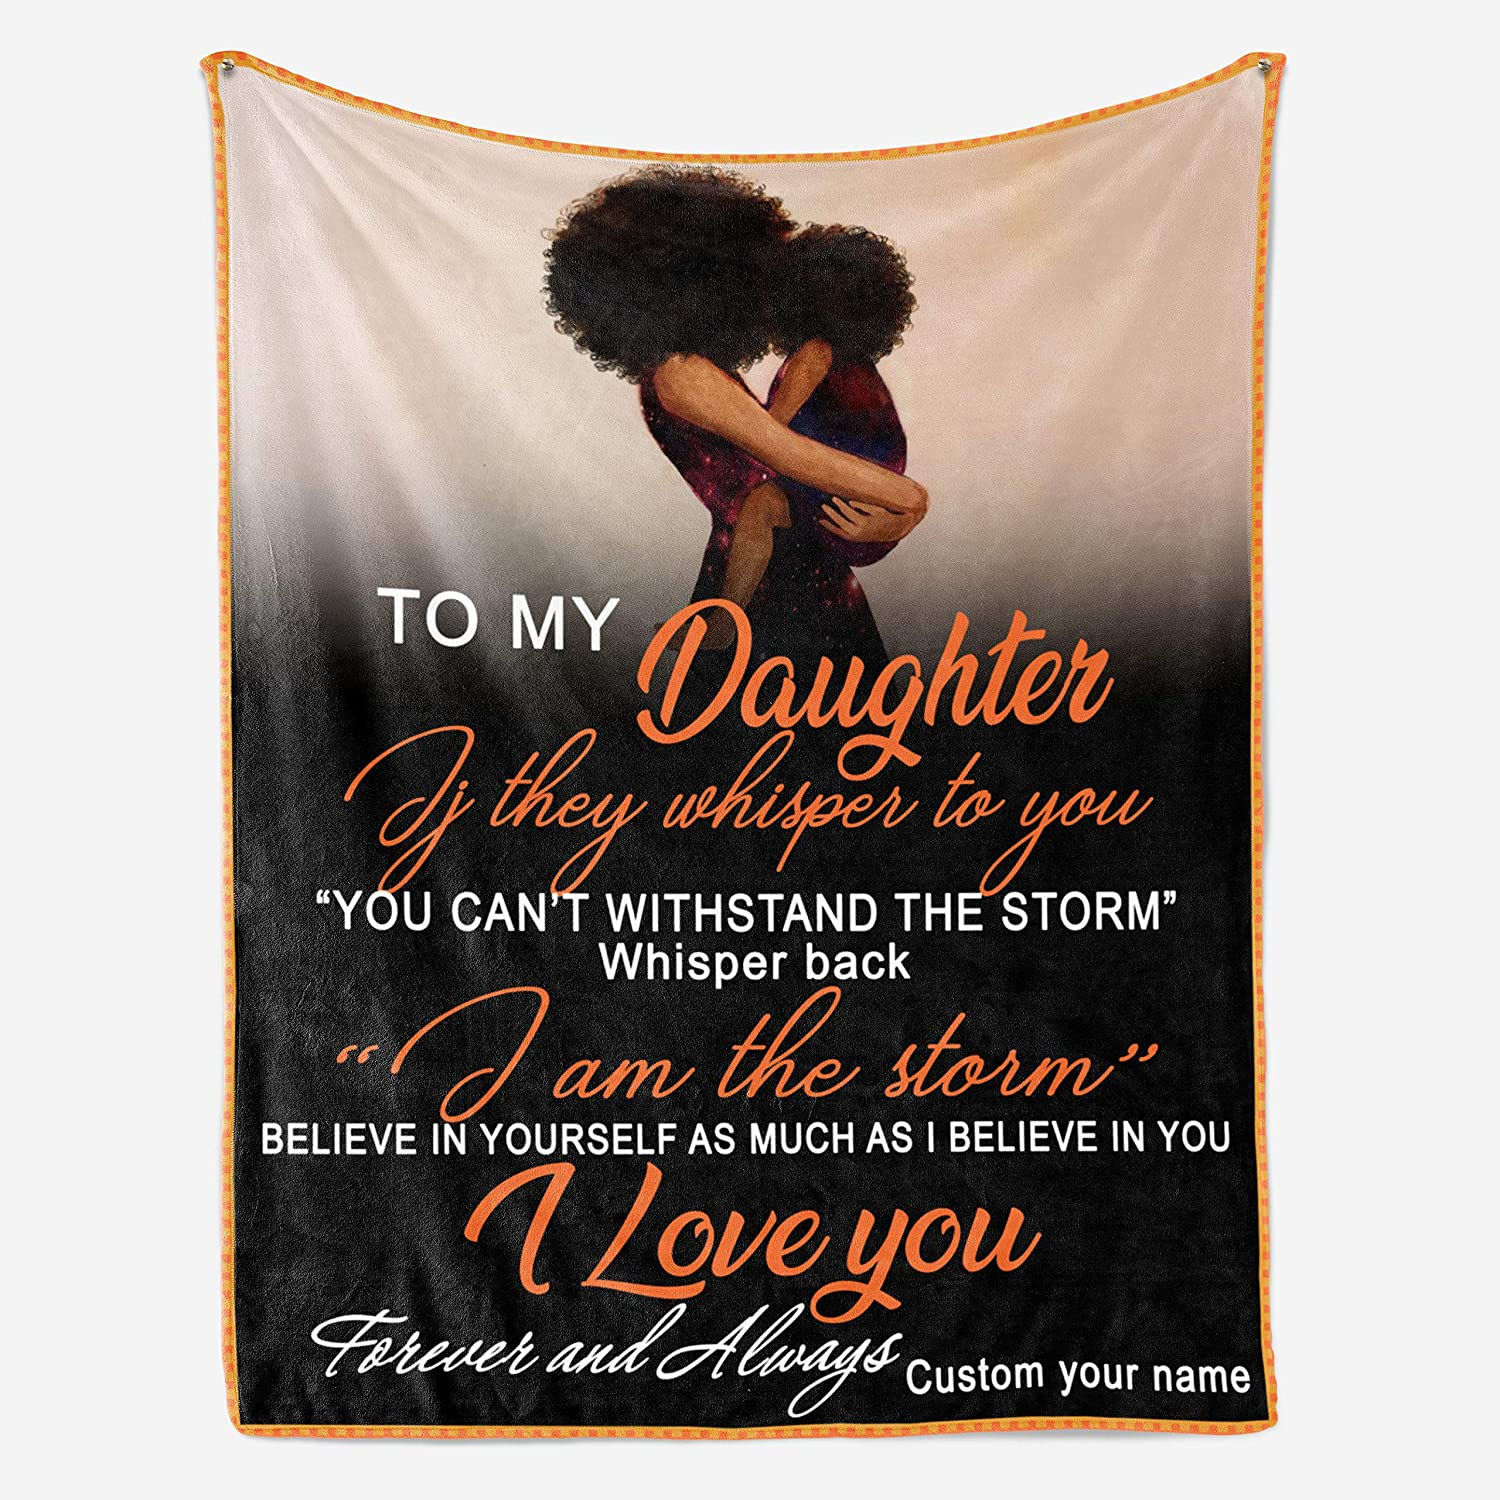 Personalized Custom Fleece Blanket - MOM to ※ラッピング ※ Daughter AM I お得セット The